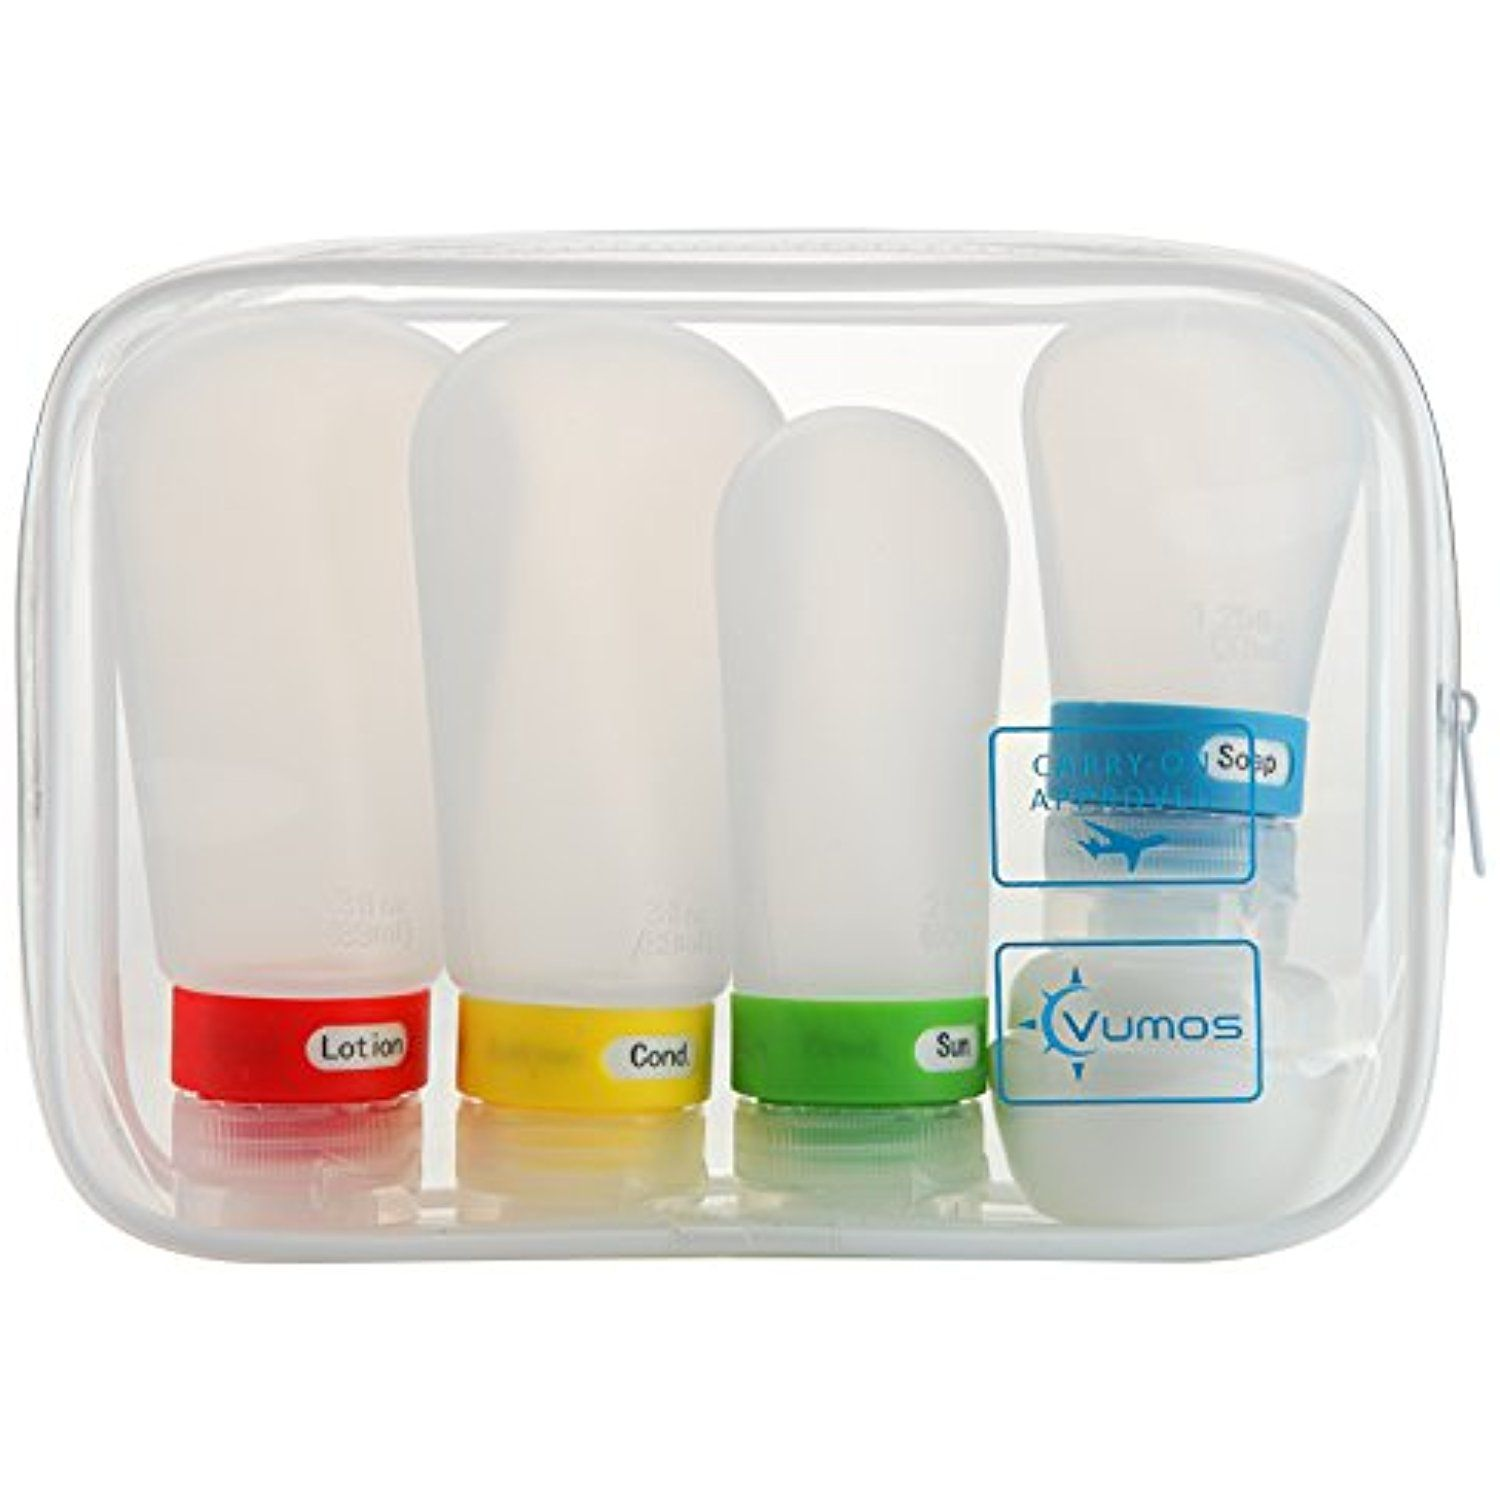 Travel Bottle Set with Leak Proof Silicone Bottles and Cream Jar in TSA  Approved EVA Bag. Suitable for all Toiletries such as Shampoo and  Conditioner. c891979a1923d